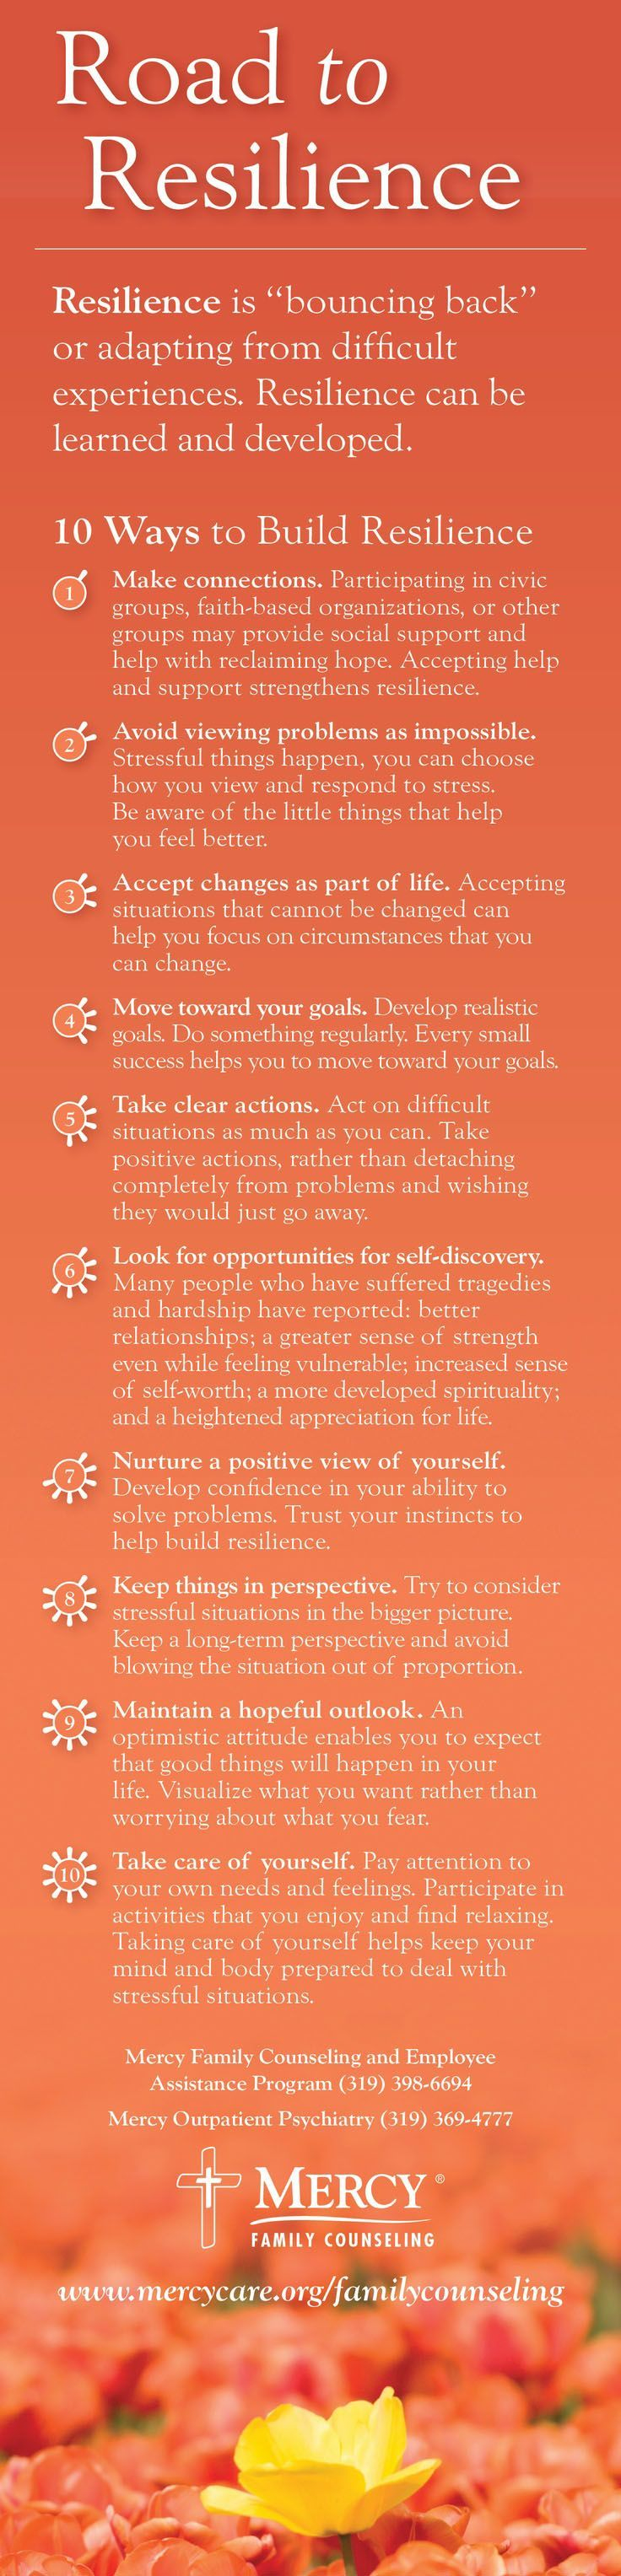 10 #tips to improve your resilience #PersoanlDevelopment #success http://www.socialmediamamma.com